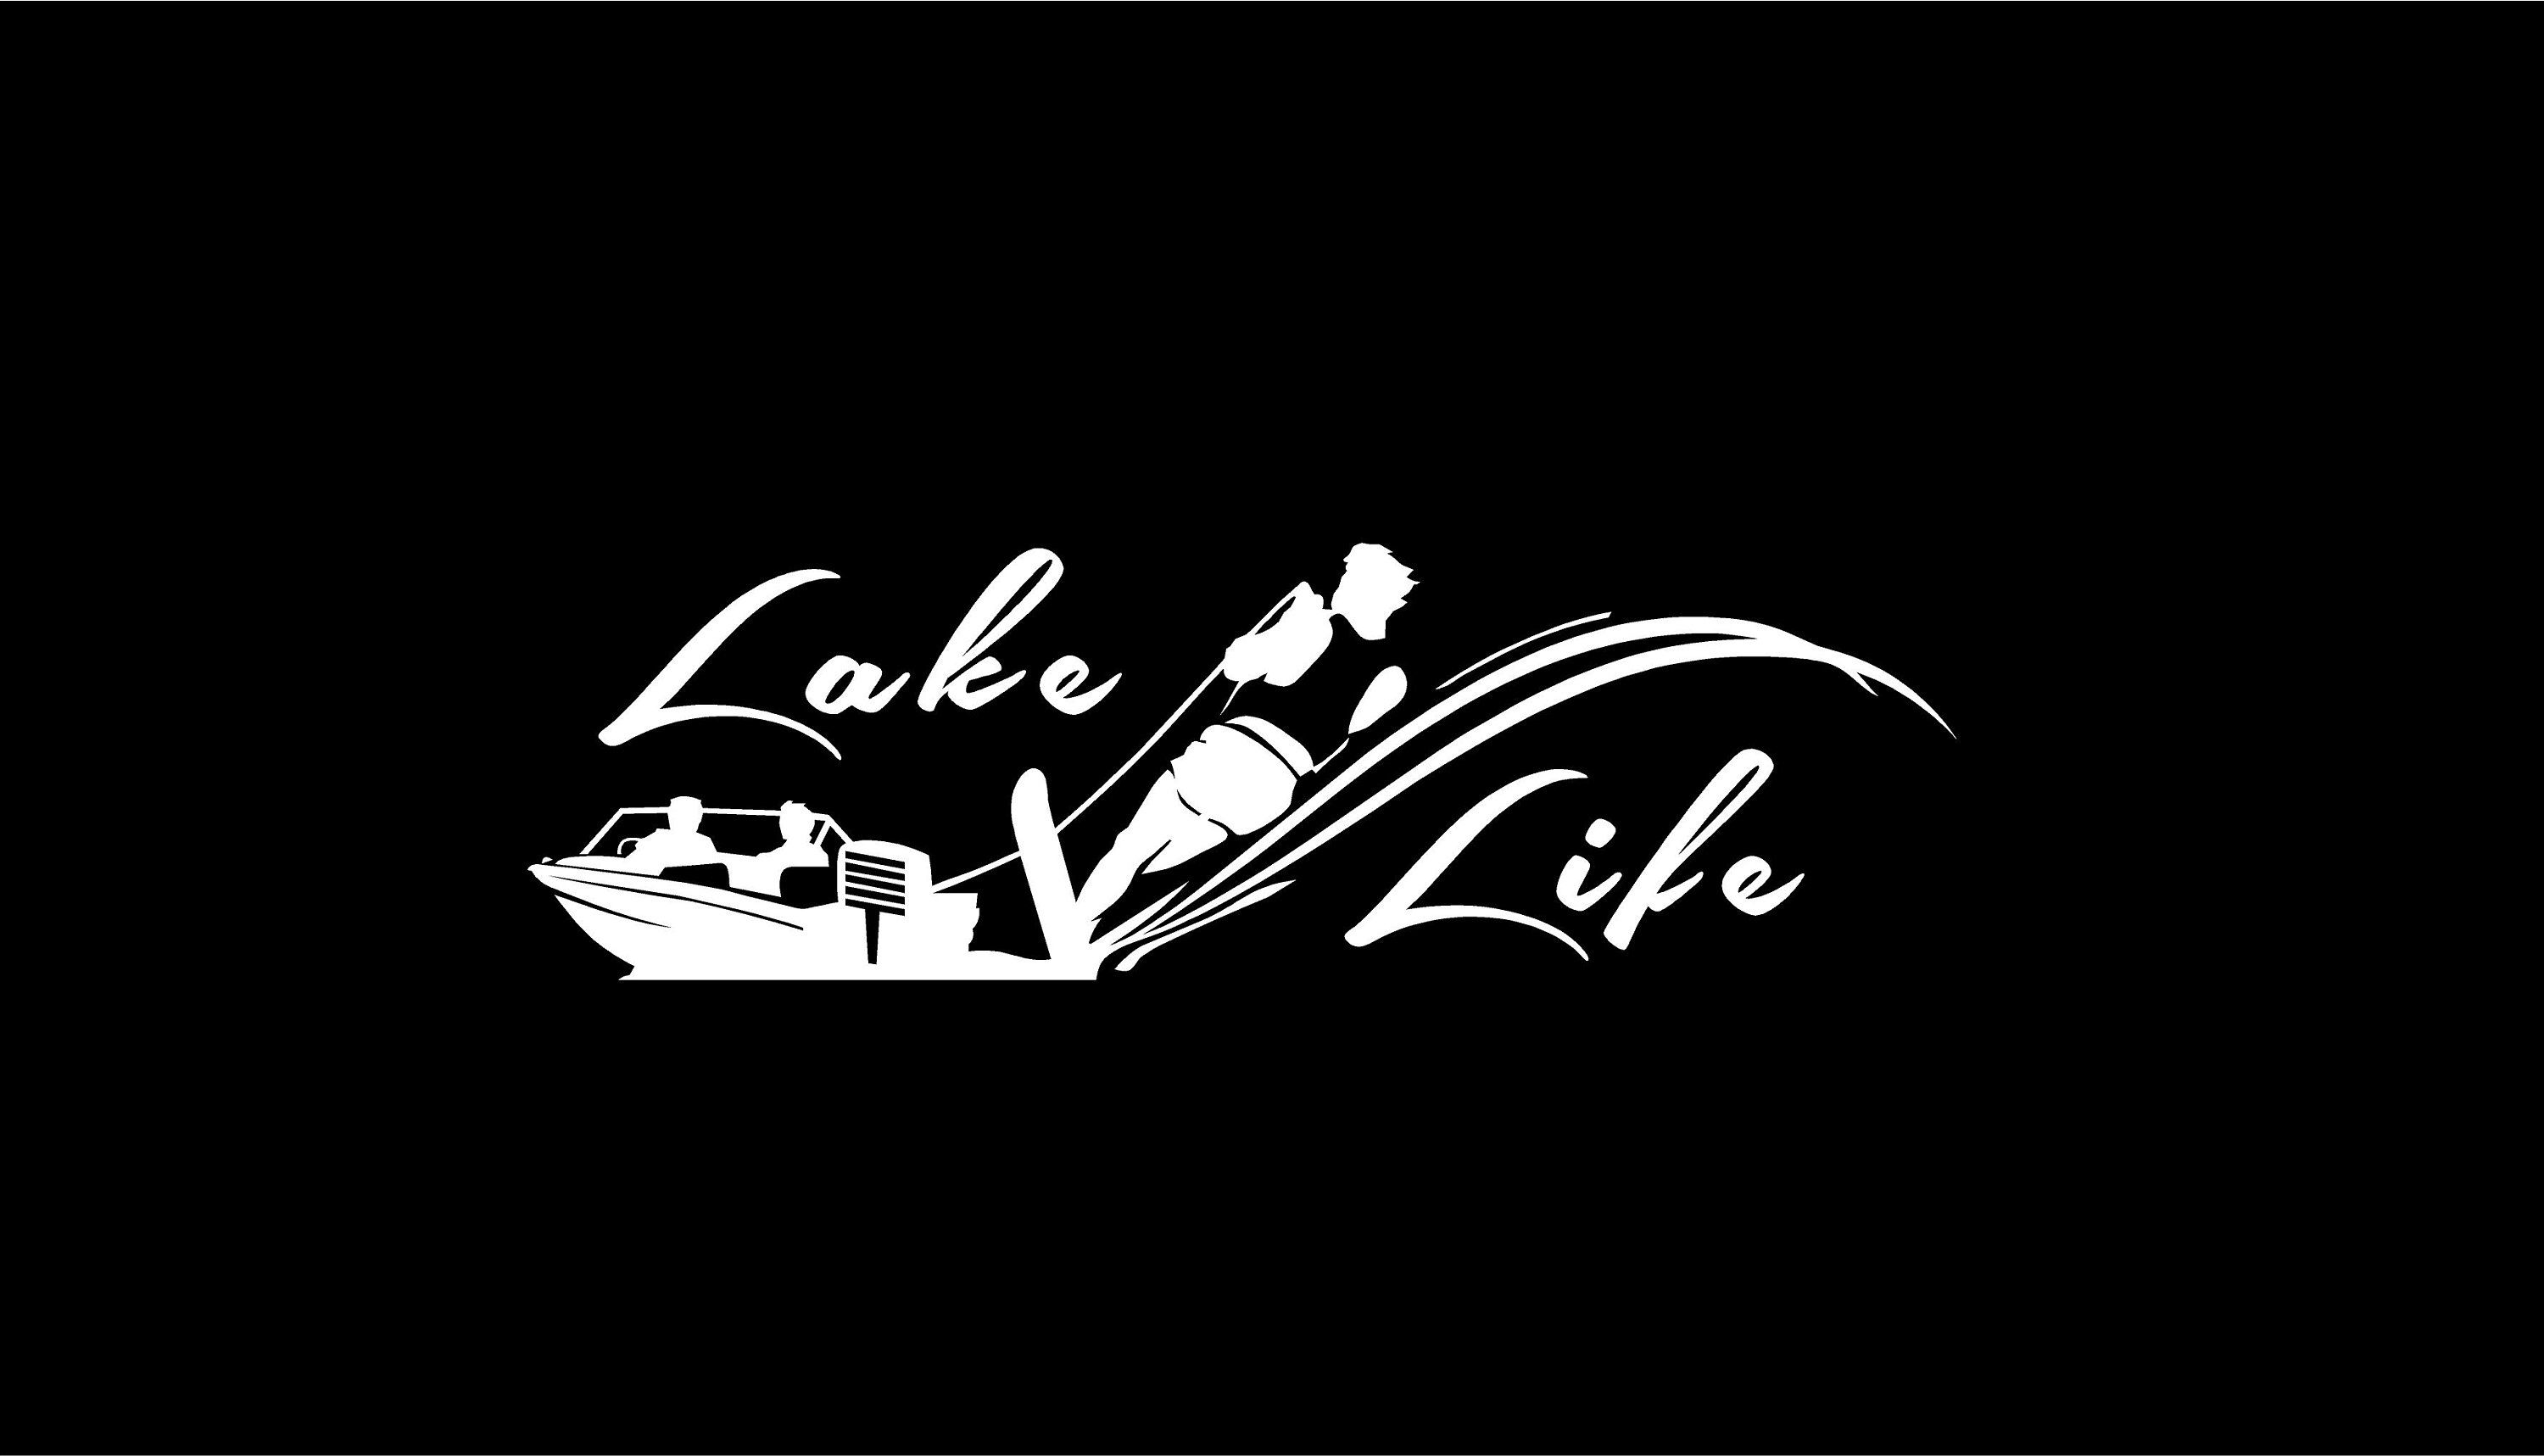 Lake Life Decal Water Skier Decal Boat Decal Vinyl Decal Car Truck Auto Vehicle Window Custom Sticker Water Sports D Boat Decals Car Decals Vinyl Sports Decals [ 1717 x 3000 Pixel ]